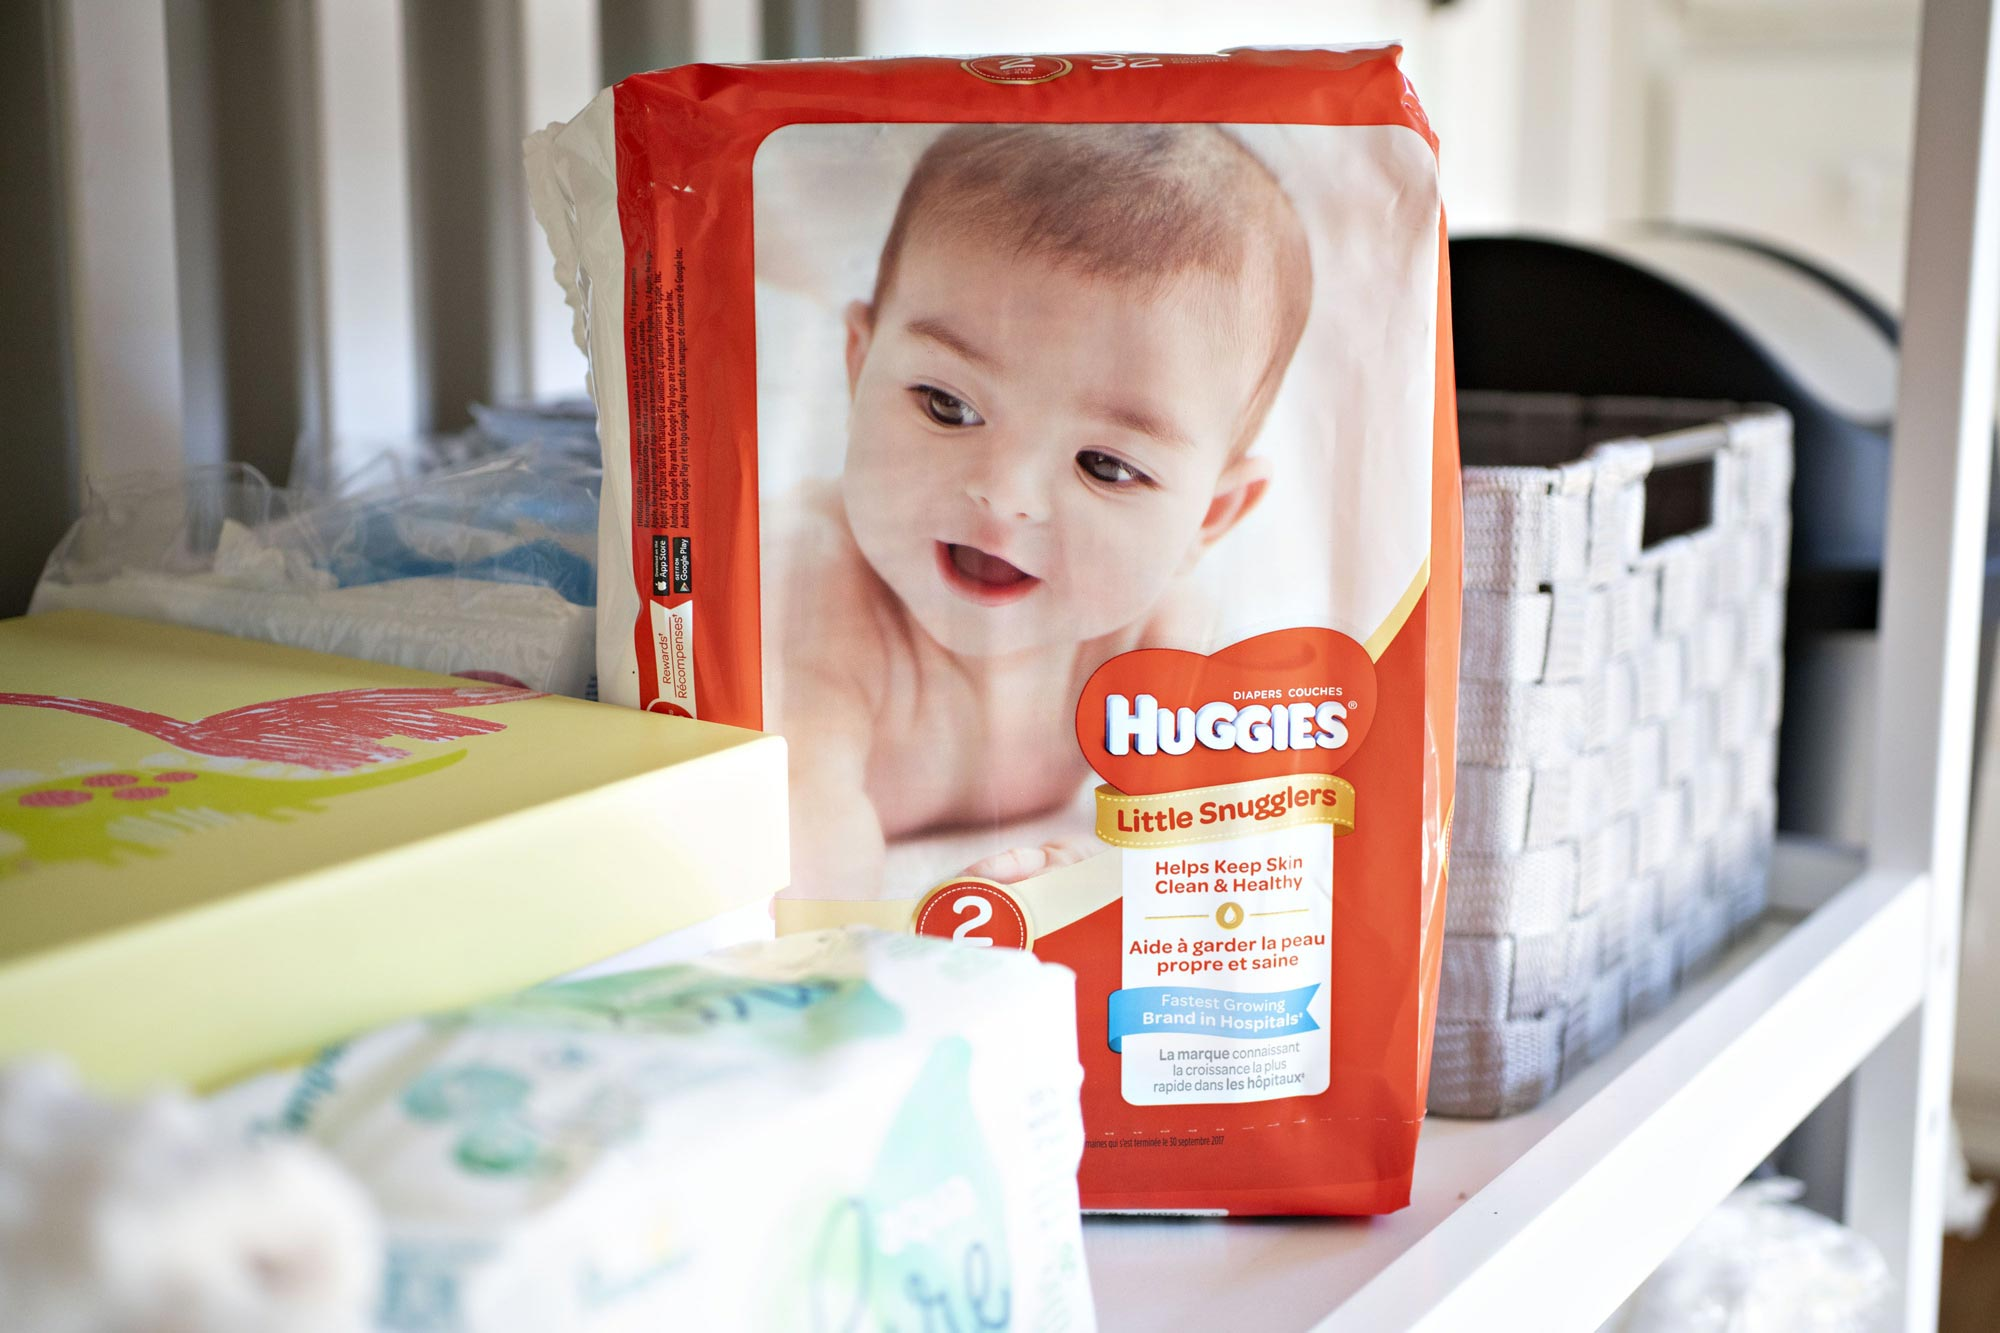 Huggies will air ad on Super Bowl as first ever diaper brand in the game